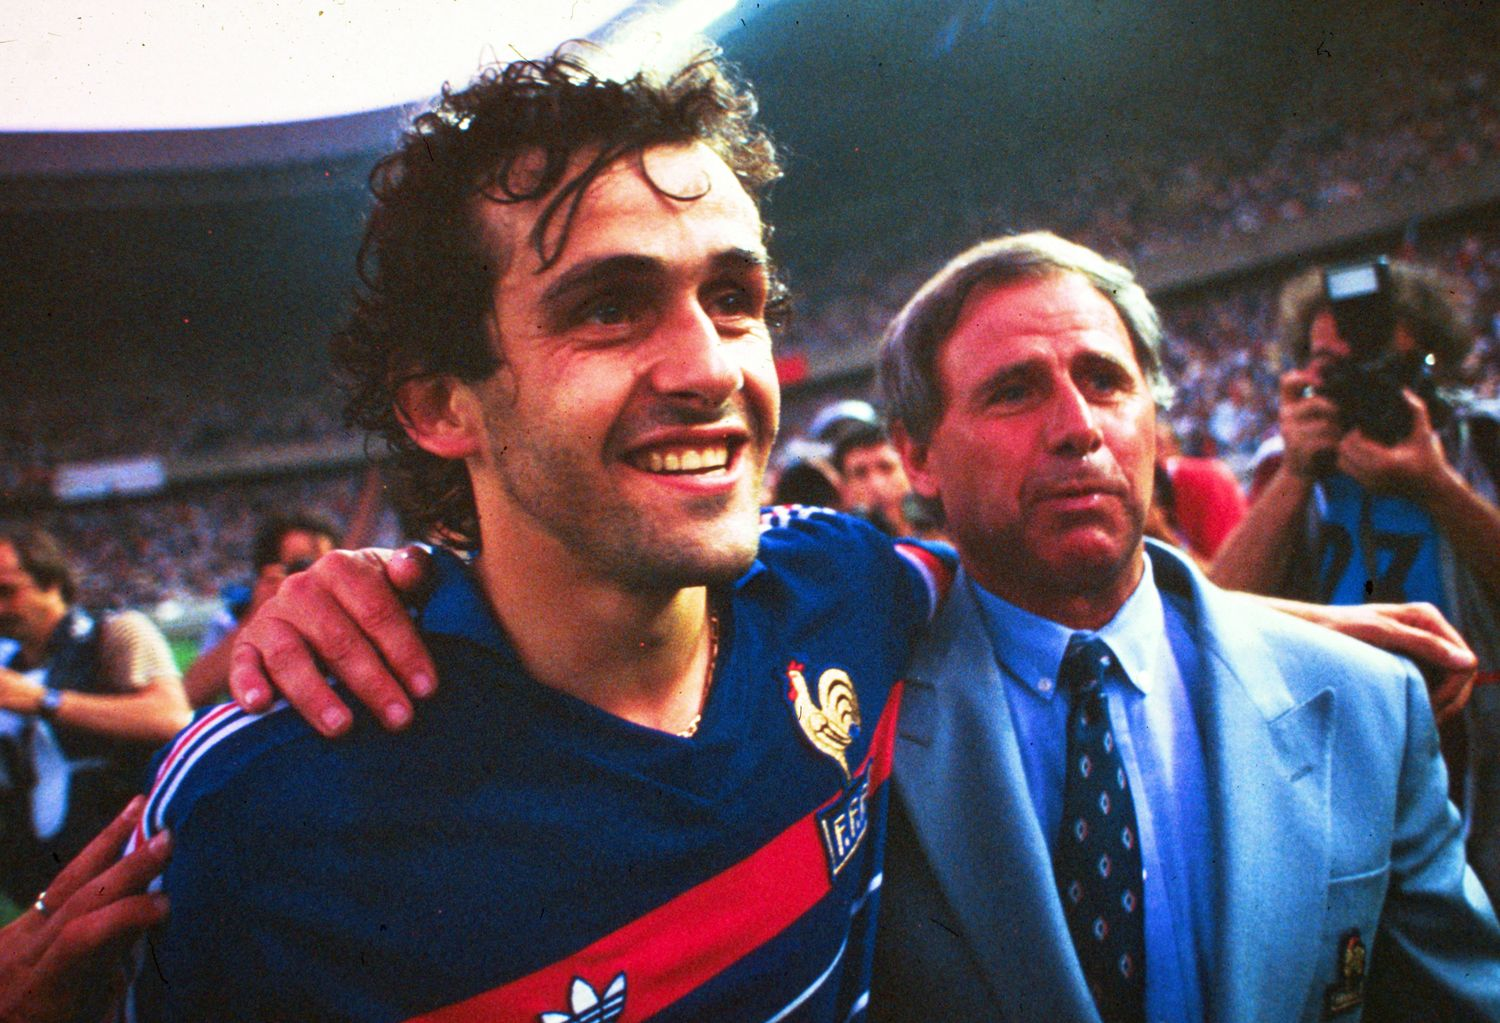 Football - Equipe de France - Michel Platini et la France du foot rendent hommage à Michel Hidalgo